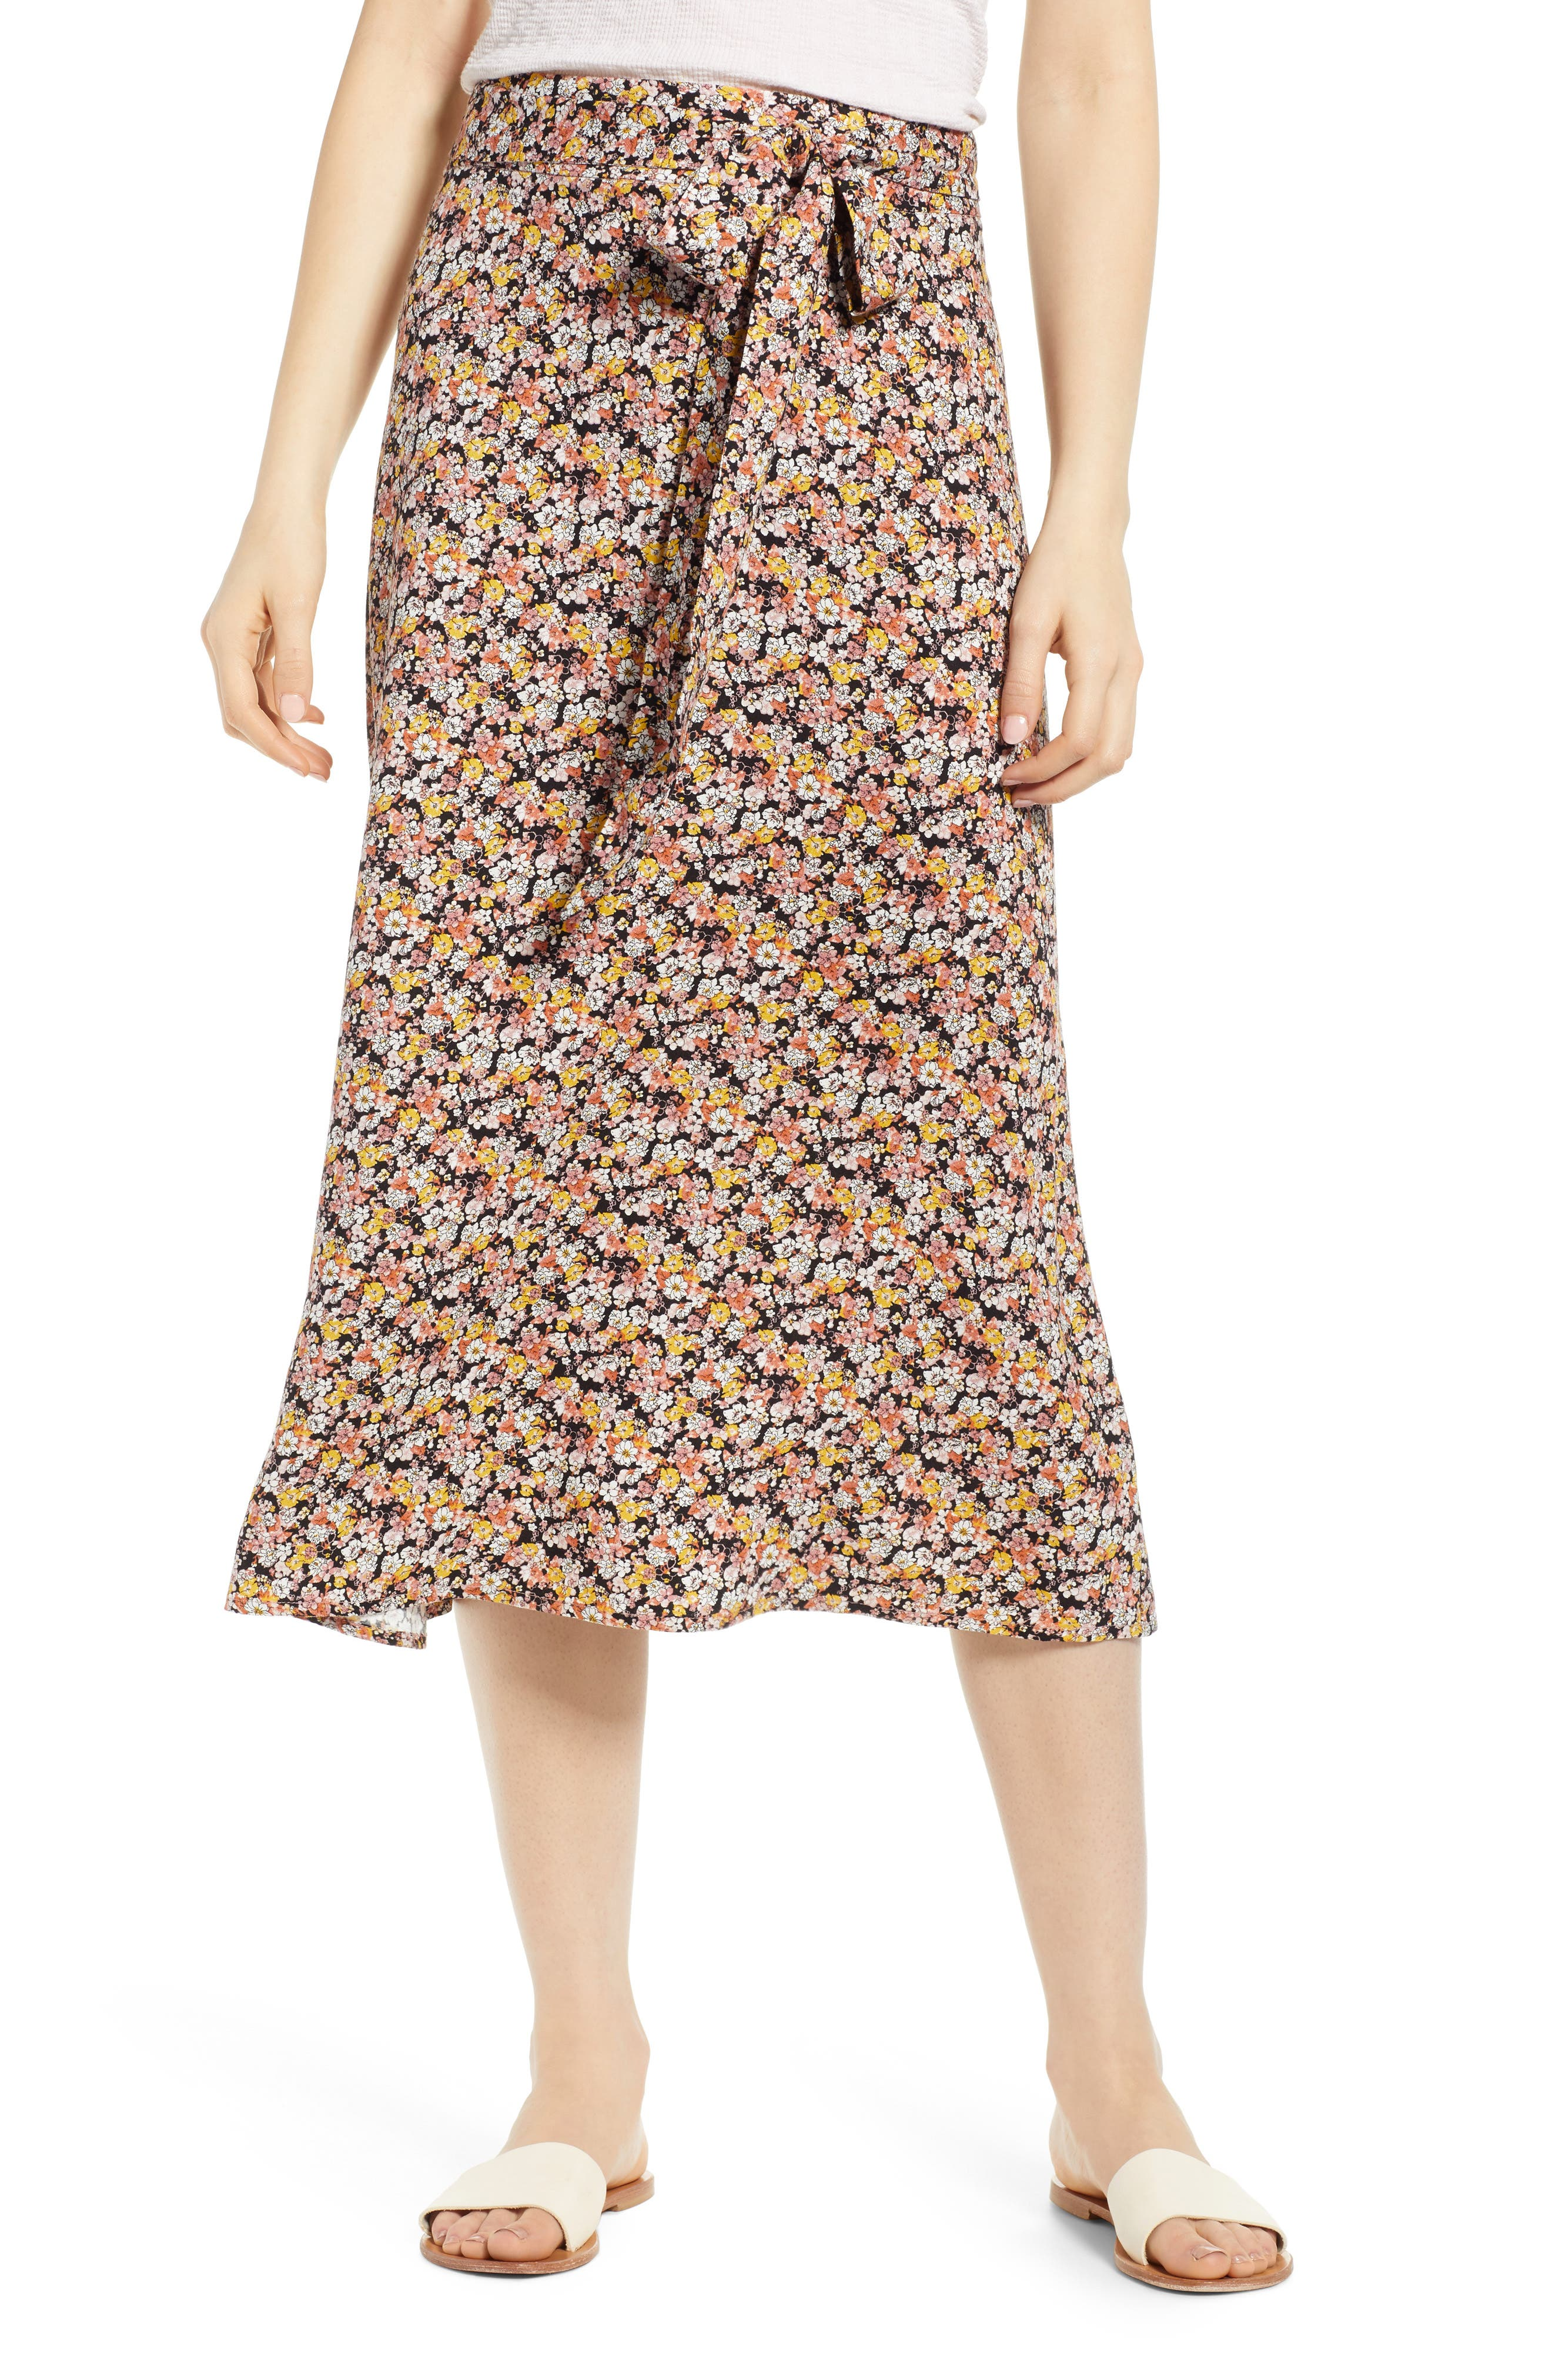 "Provided Jon 30"" Long Floral Embroidery Tulle Skirt Size 10 Clothing, Shoes & Accessories Women's Clothing"